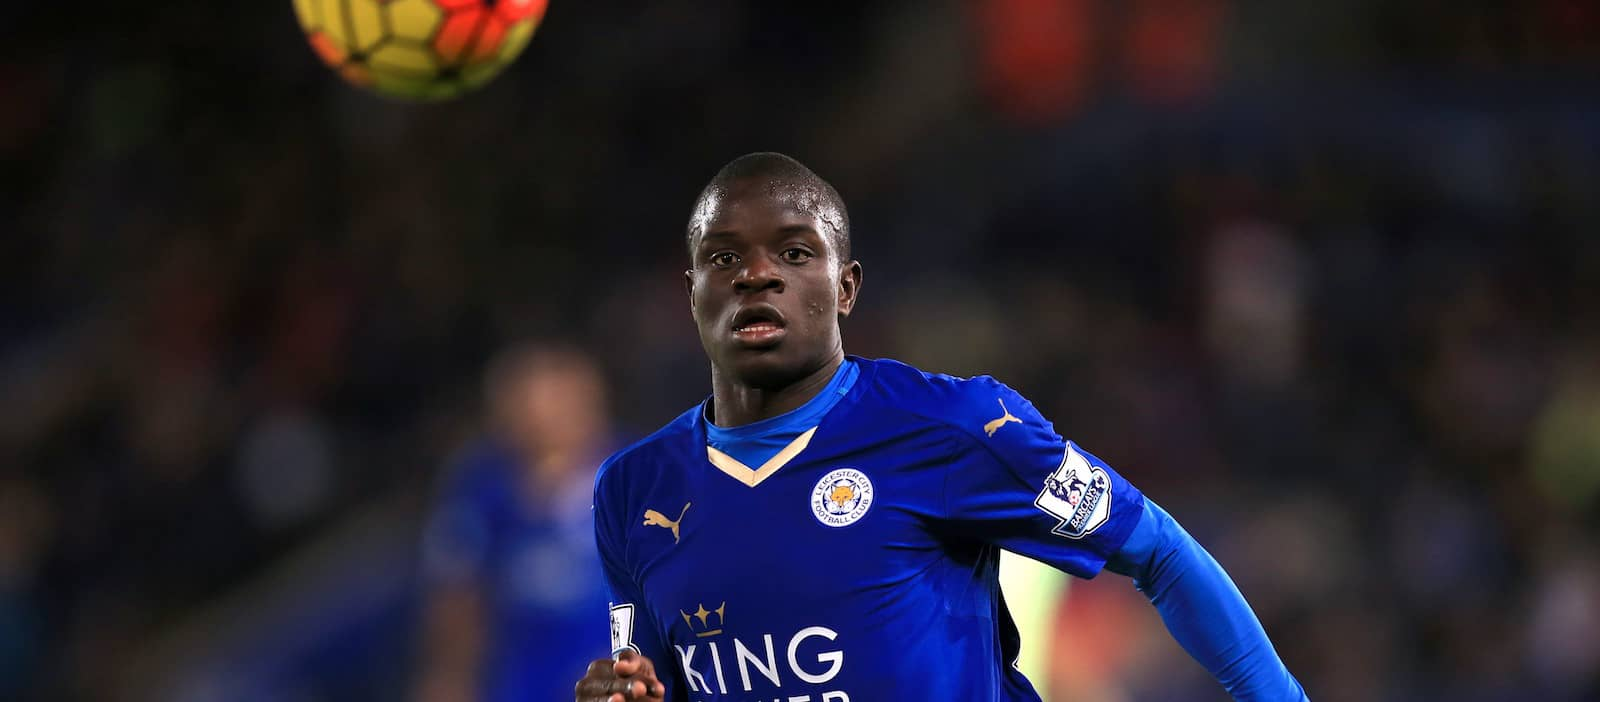 Antonio Conte refuses to confirm whether N'Golo Kante will play against Manchester United